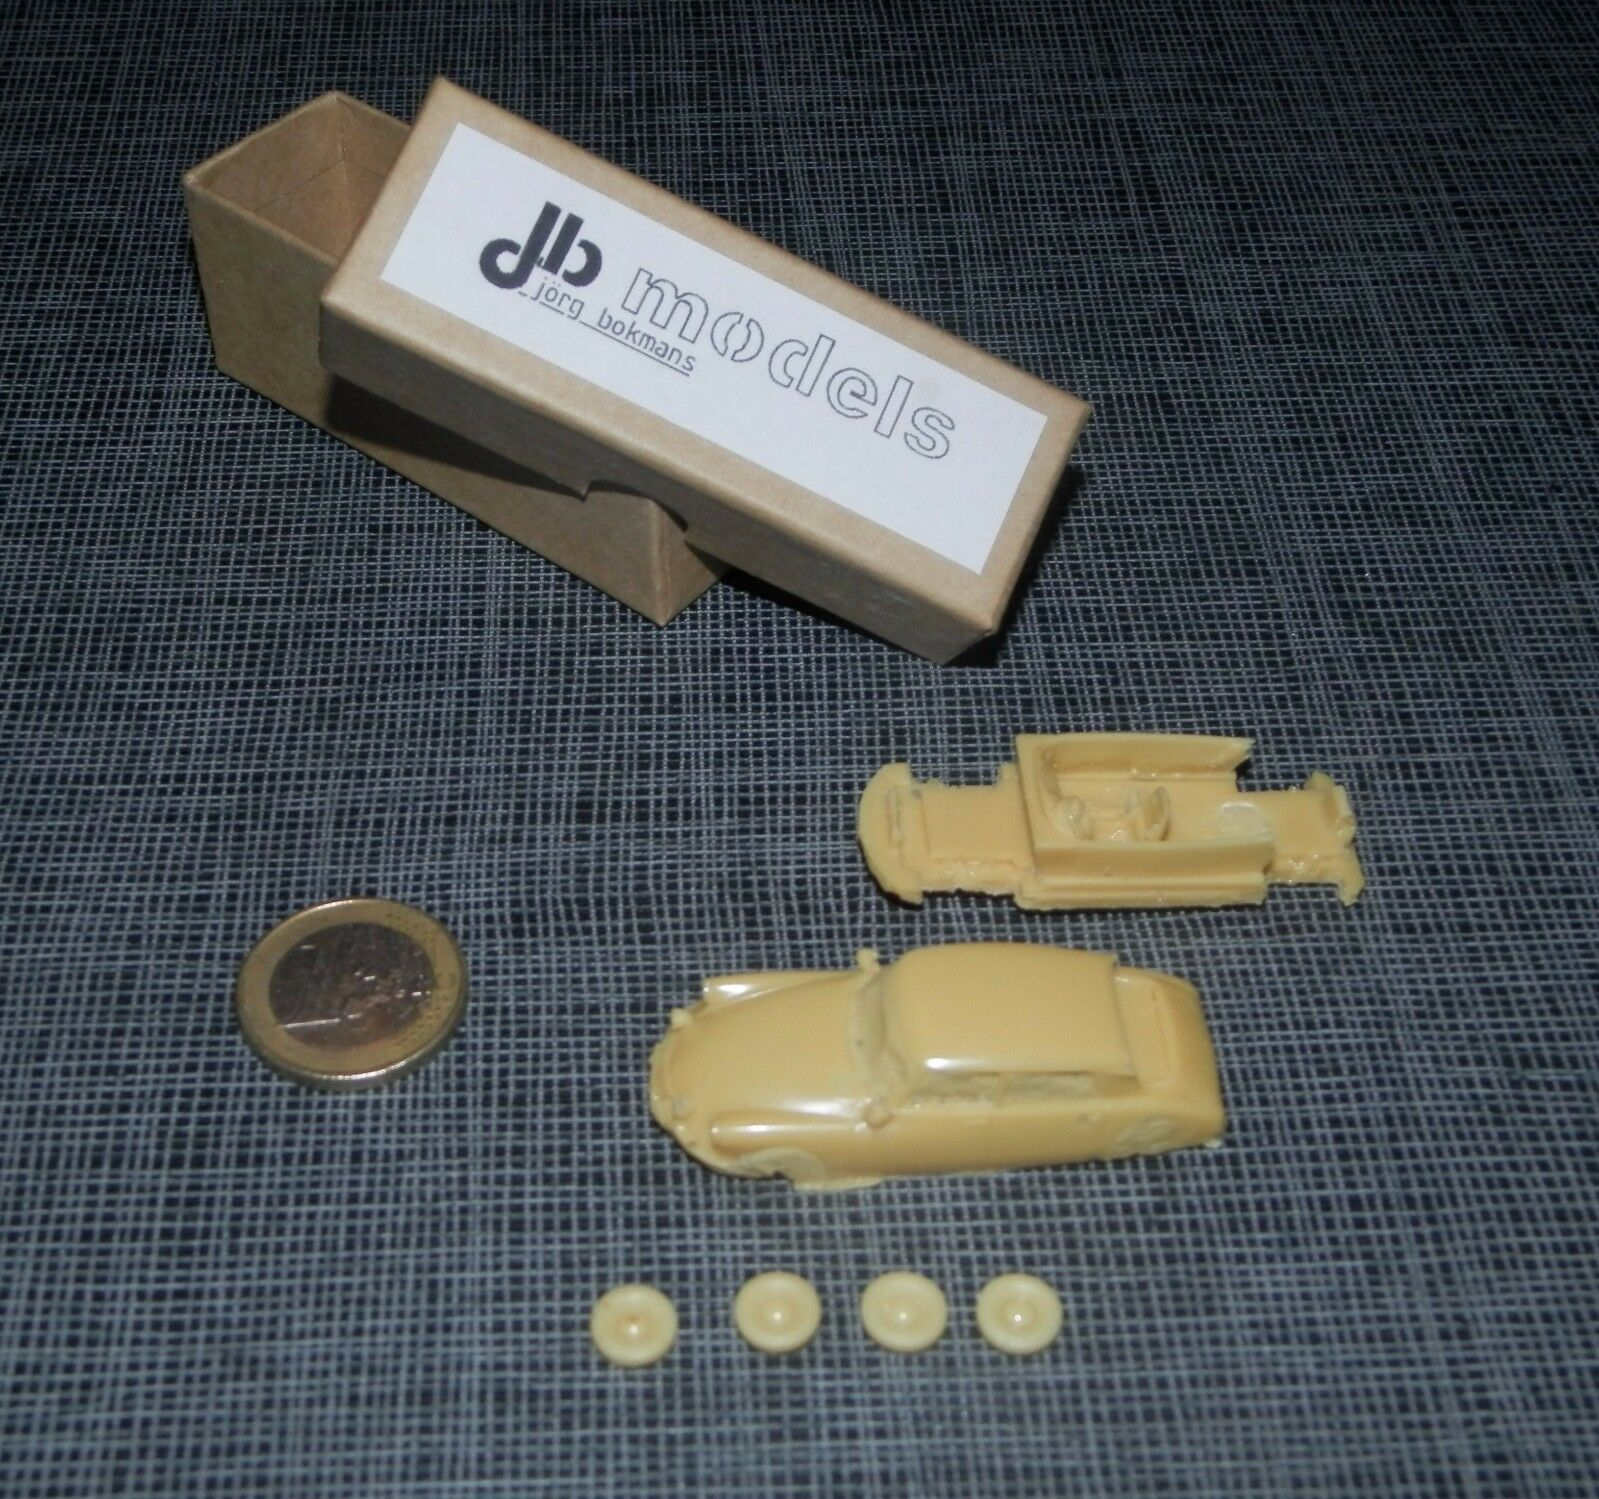 Jb models 1 87  citroen ds rally (rare) has kit build